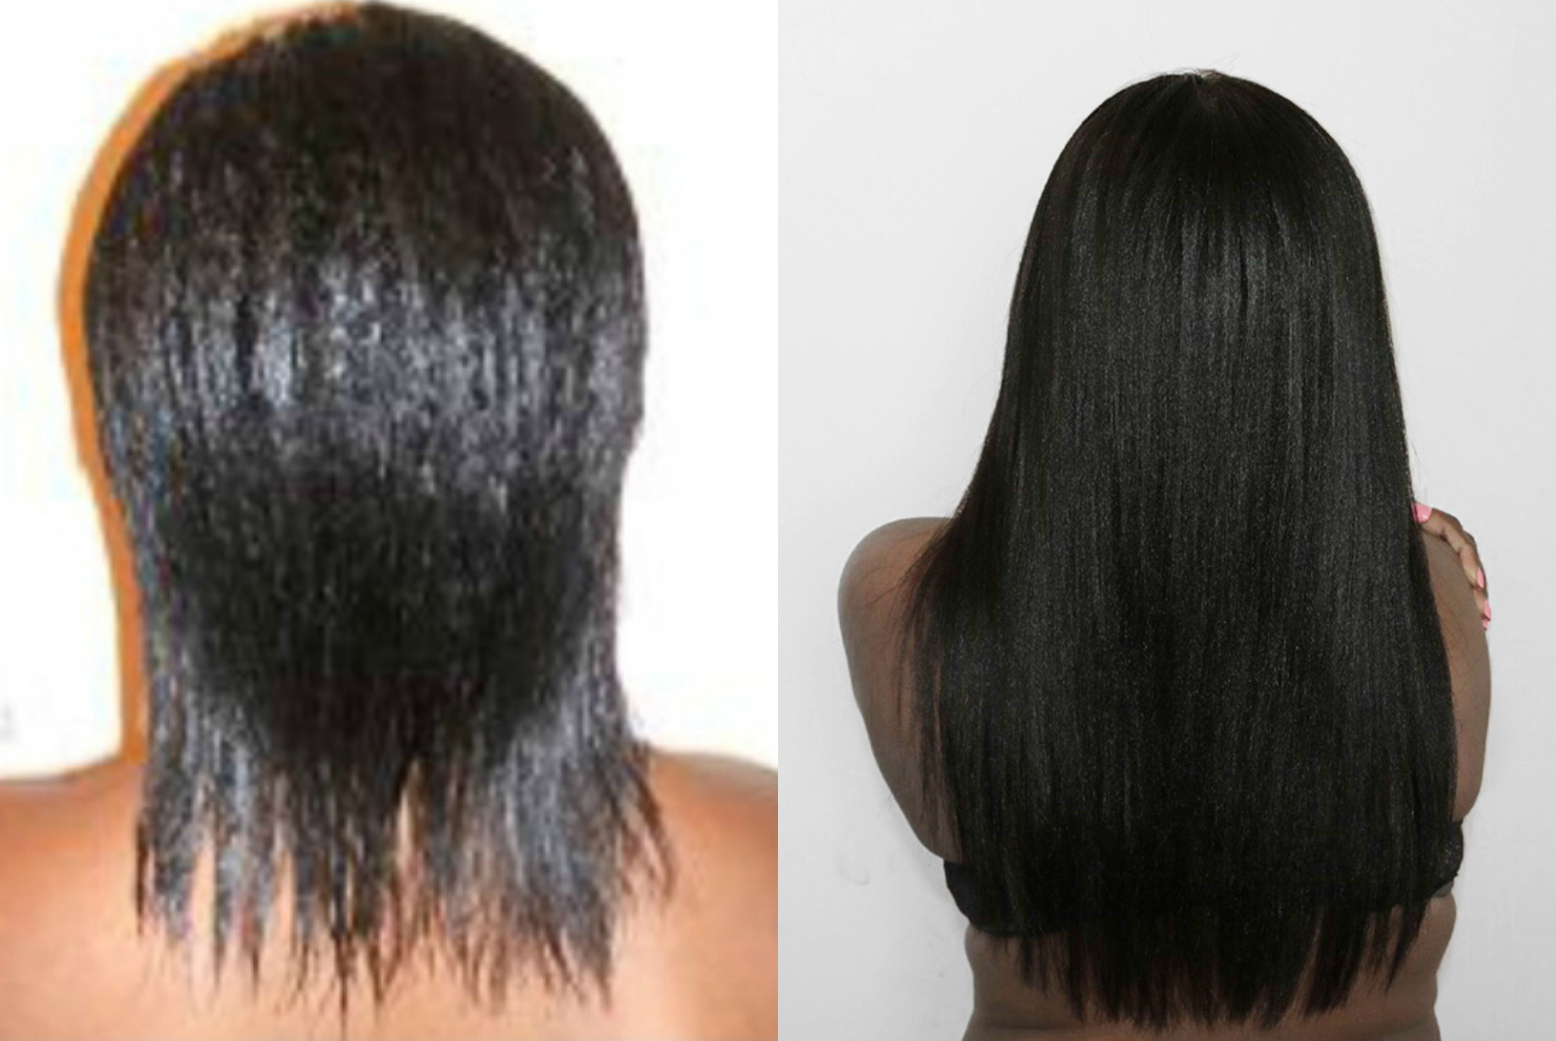 Then and Now Relaxed Hair Comparison. Relaxed hair can growth healthy and strong. | HairliciousInc.com